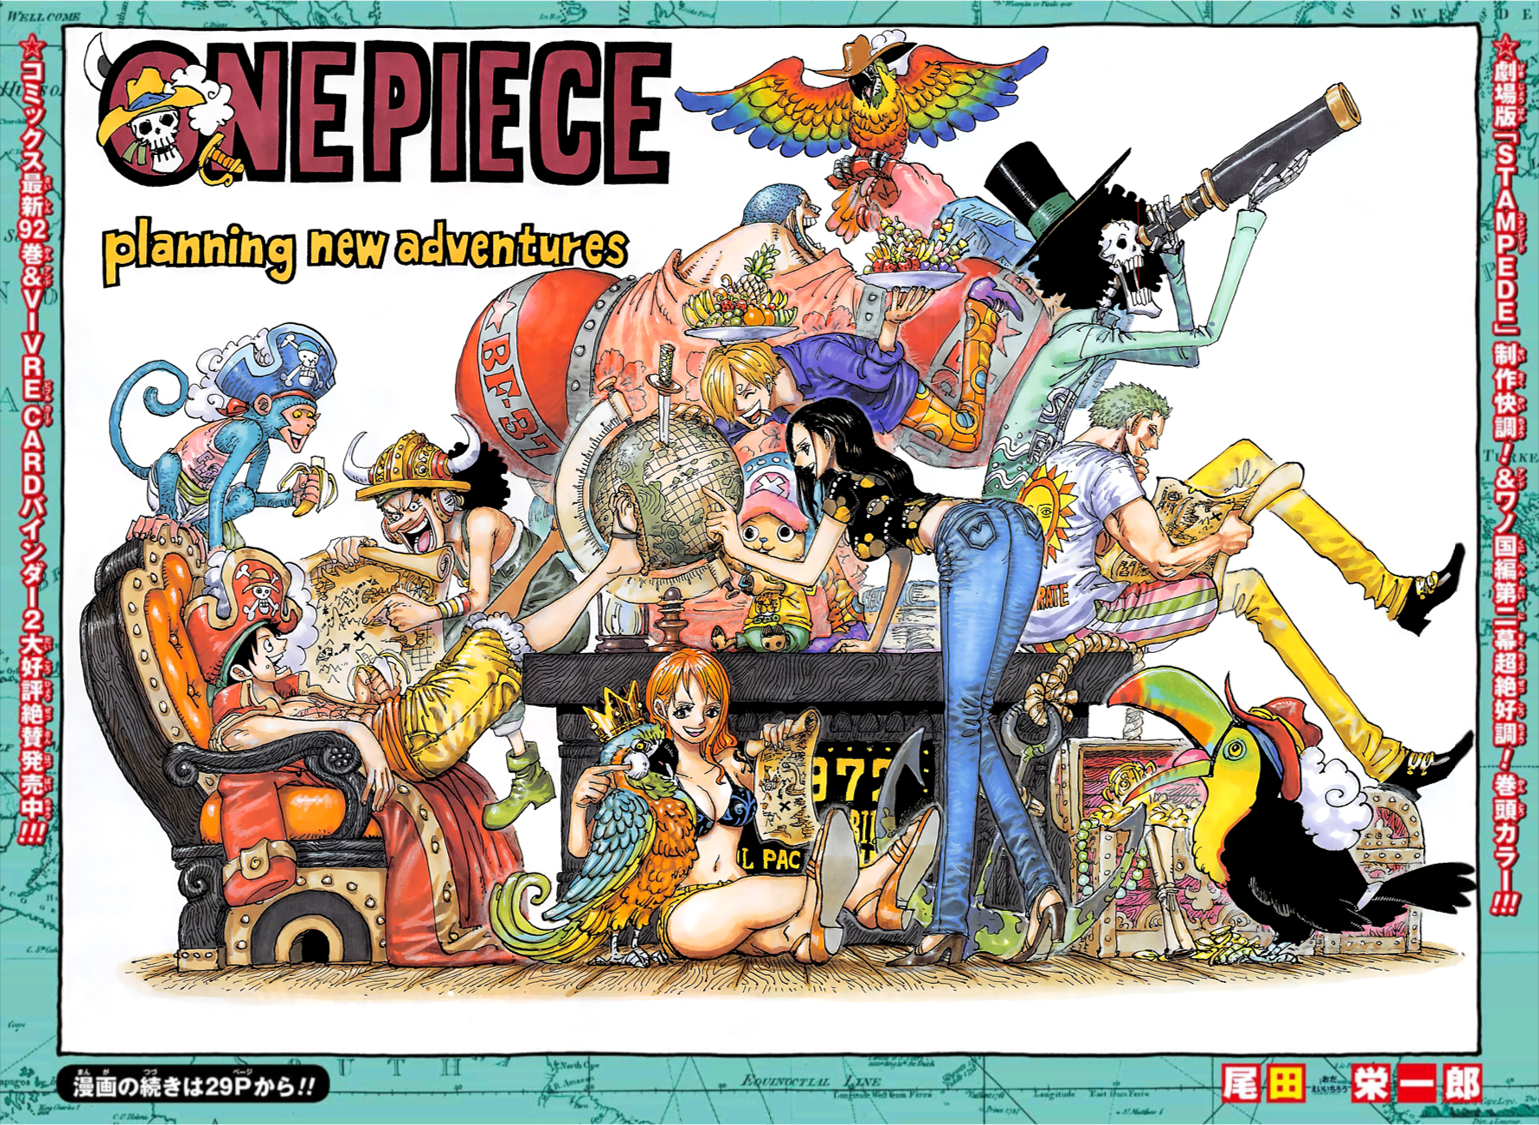 One Piece Episodeguide